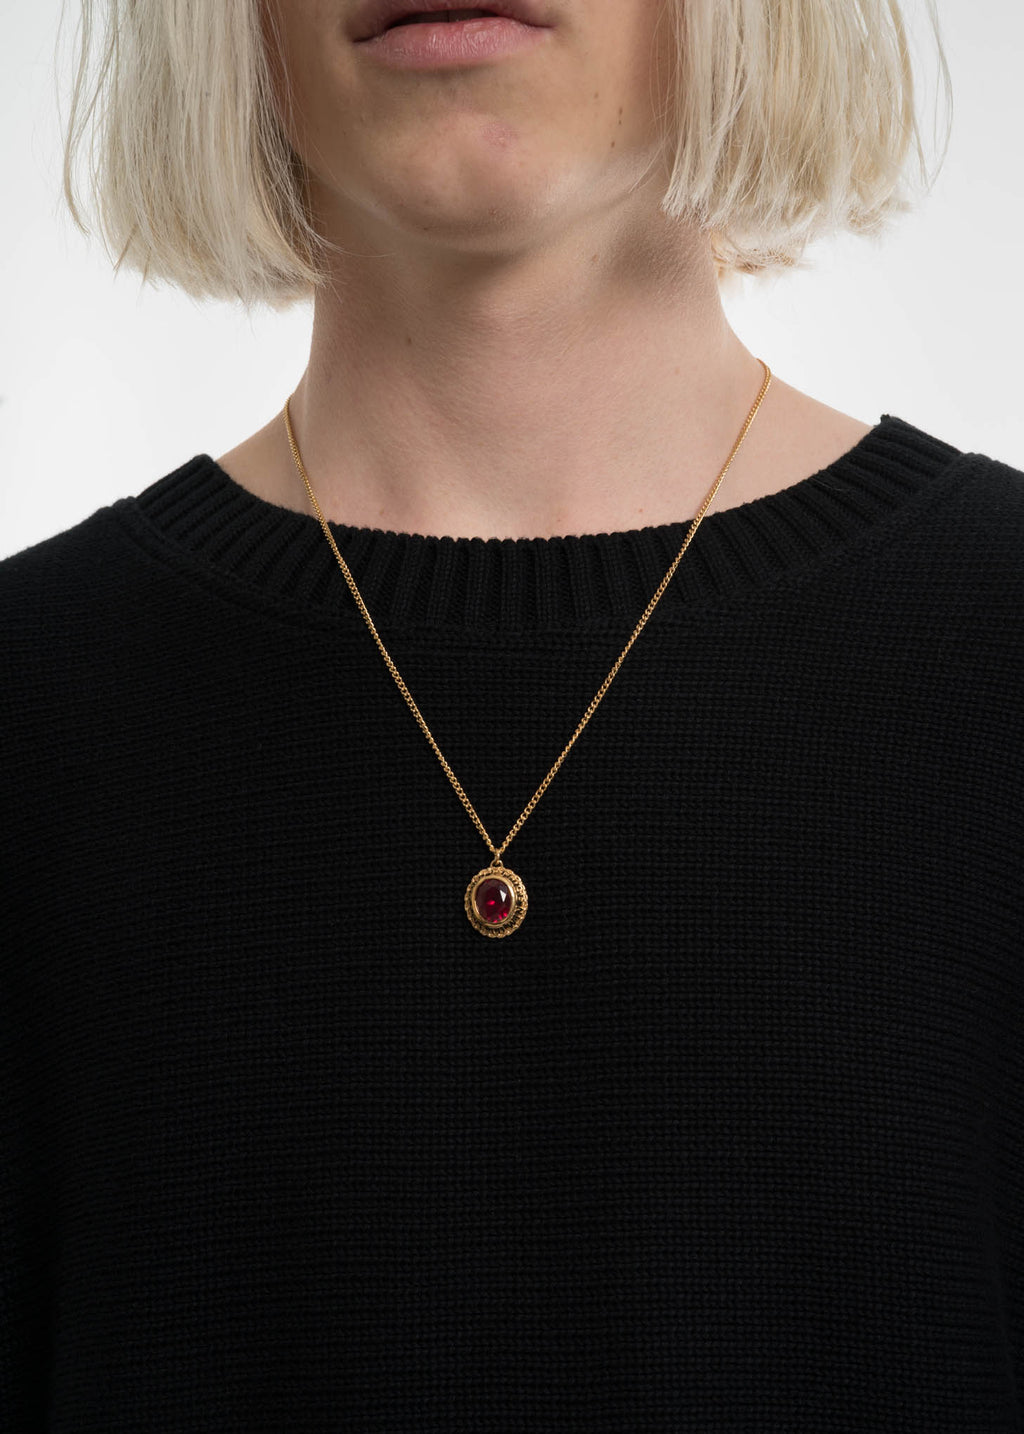 Gold and Red Class Pendent